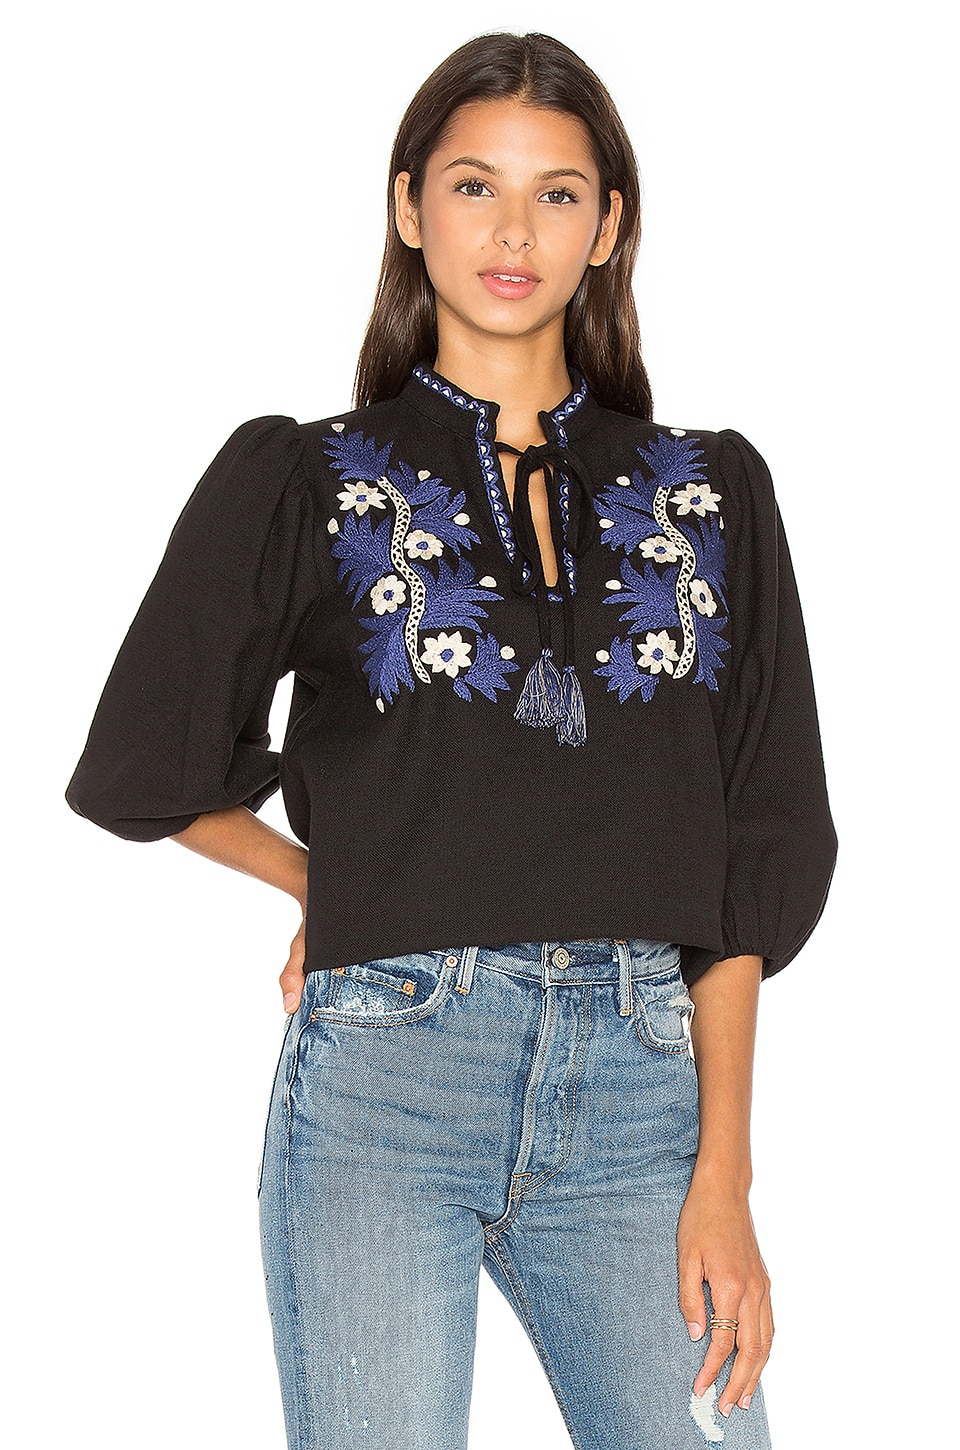 Two Tone Floral Top